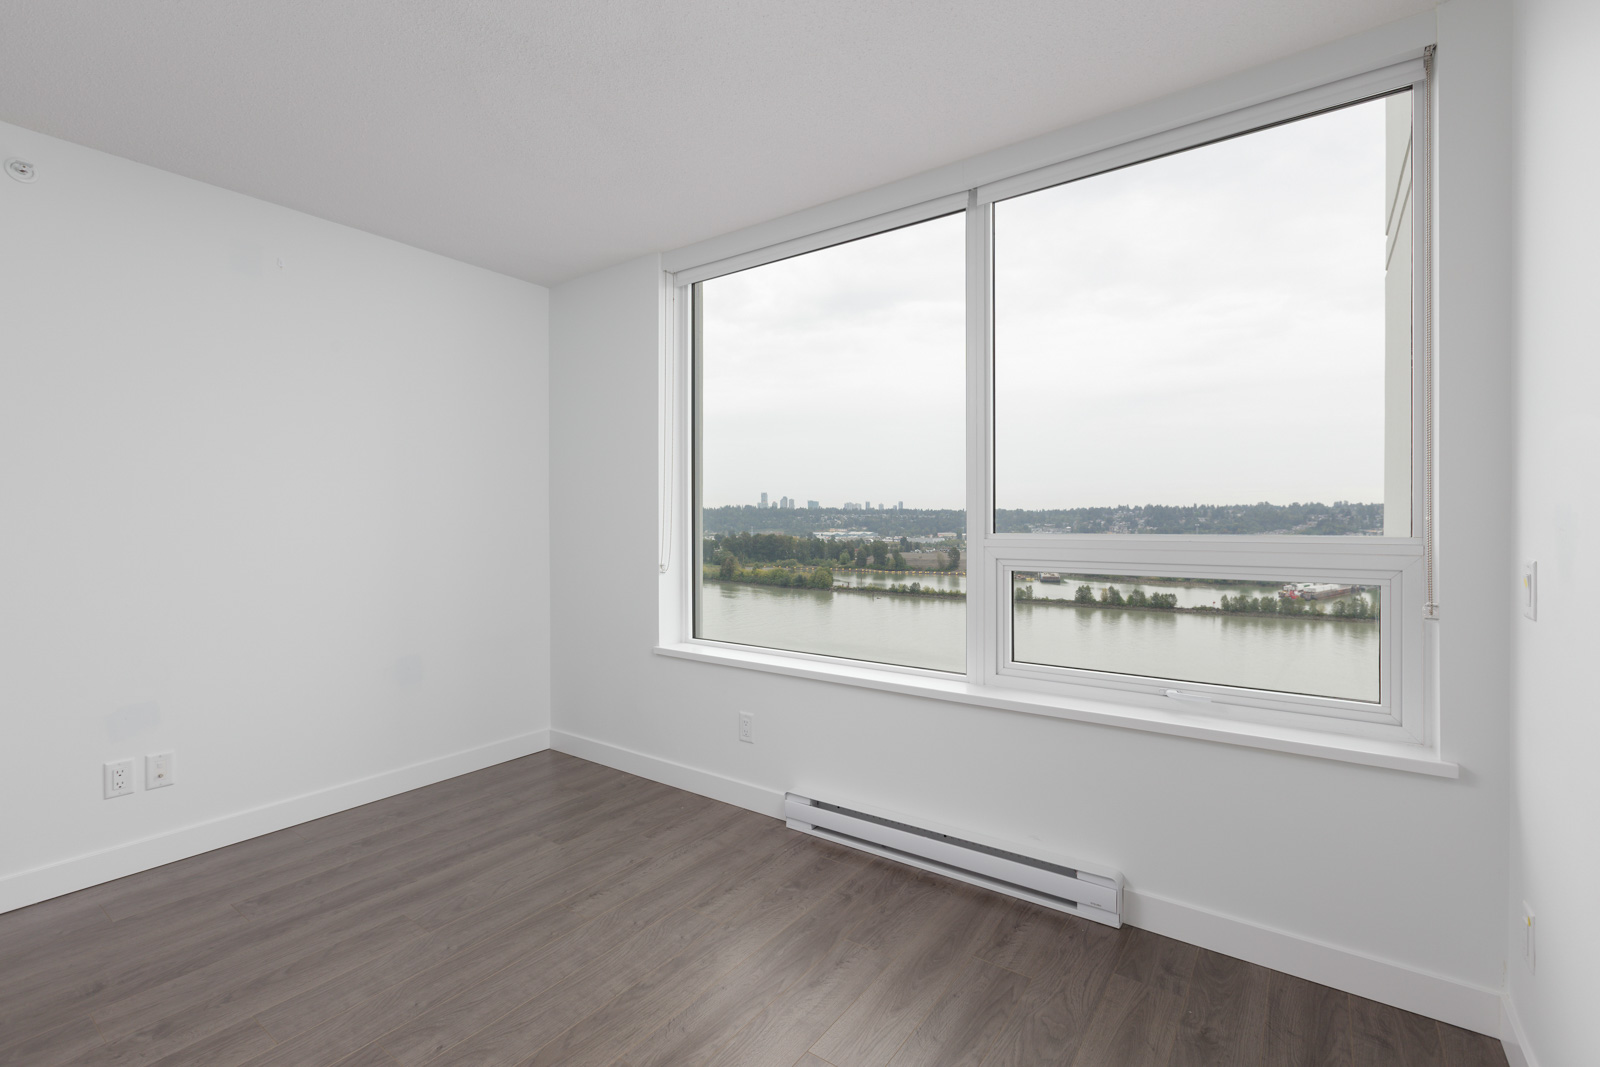 new laminate floors and huge window with a view on the river